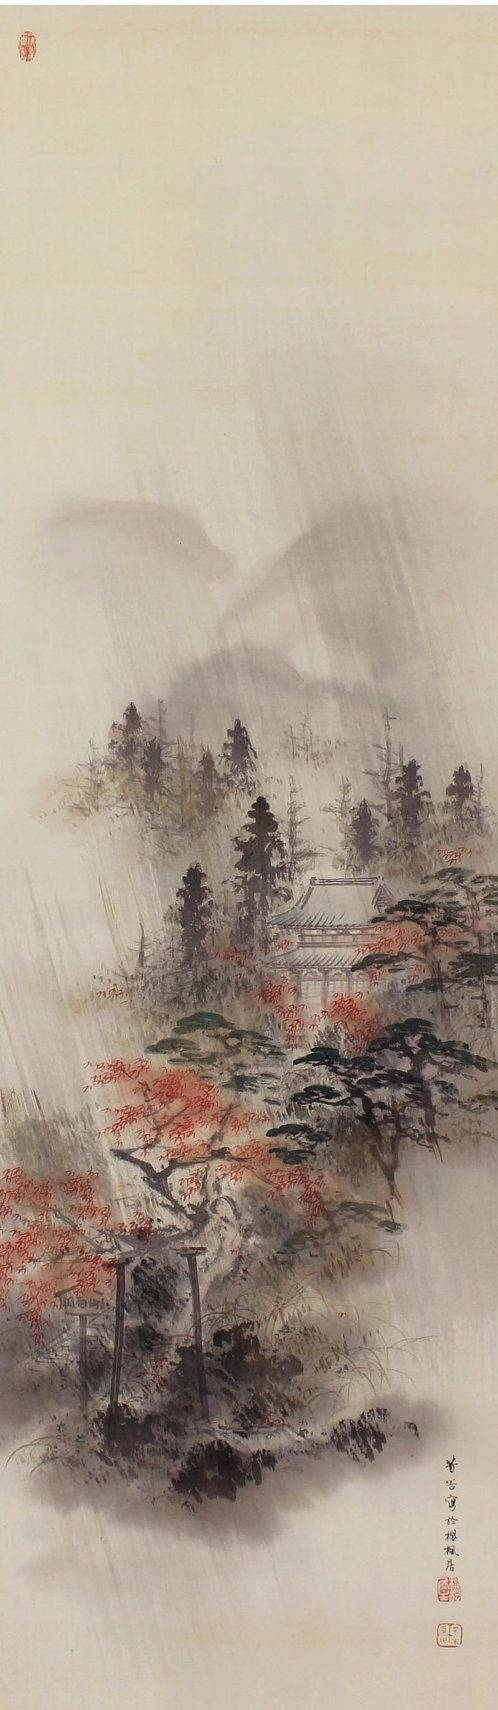 17 Best Tattoos Images On Pinterest | Japanese Painting, Chinese Inside Newest Chinese Symbol For Inner Strength Wall Art (View 1 of 25)